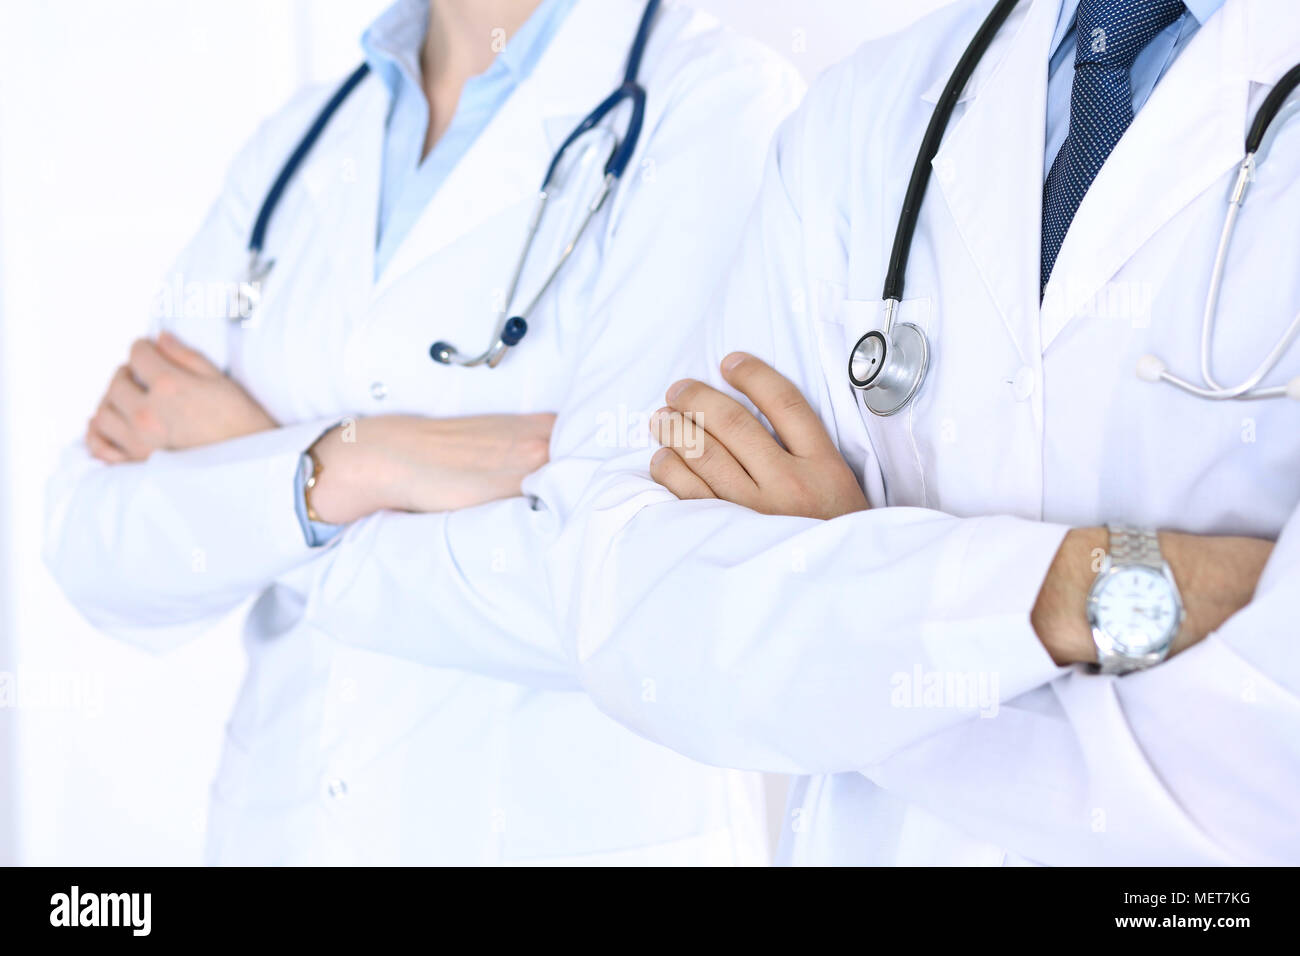 Team of unknown doctors standing straight with arms crossed in hospital. Physicians ready to help. Healthcare, insurance and medicine concept - Stock Image